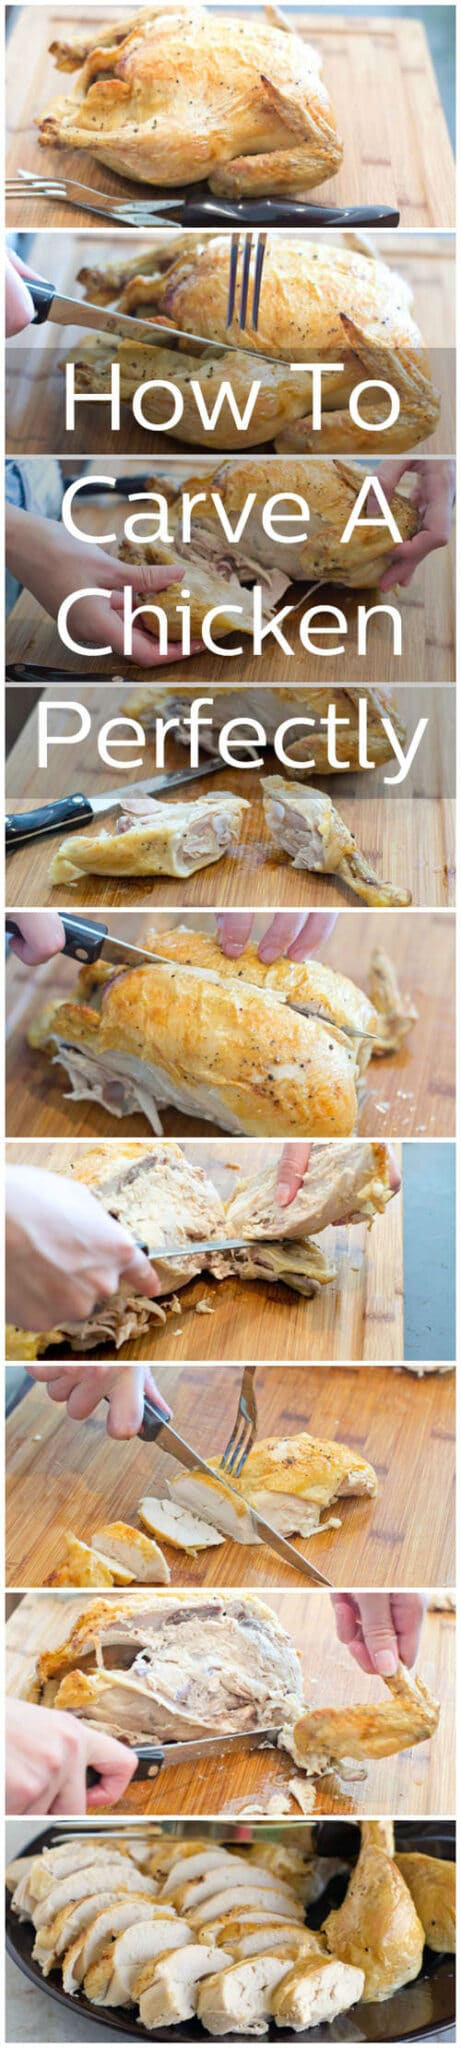 Step-by-step guide for carving a chicken perfectly